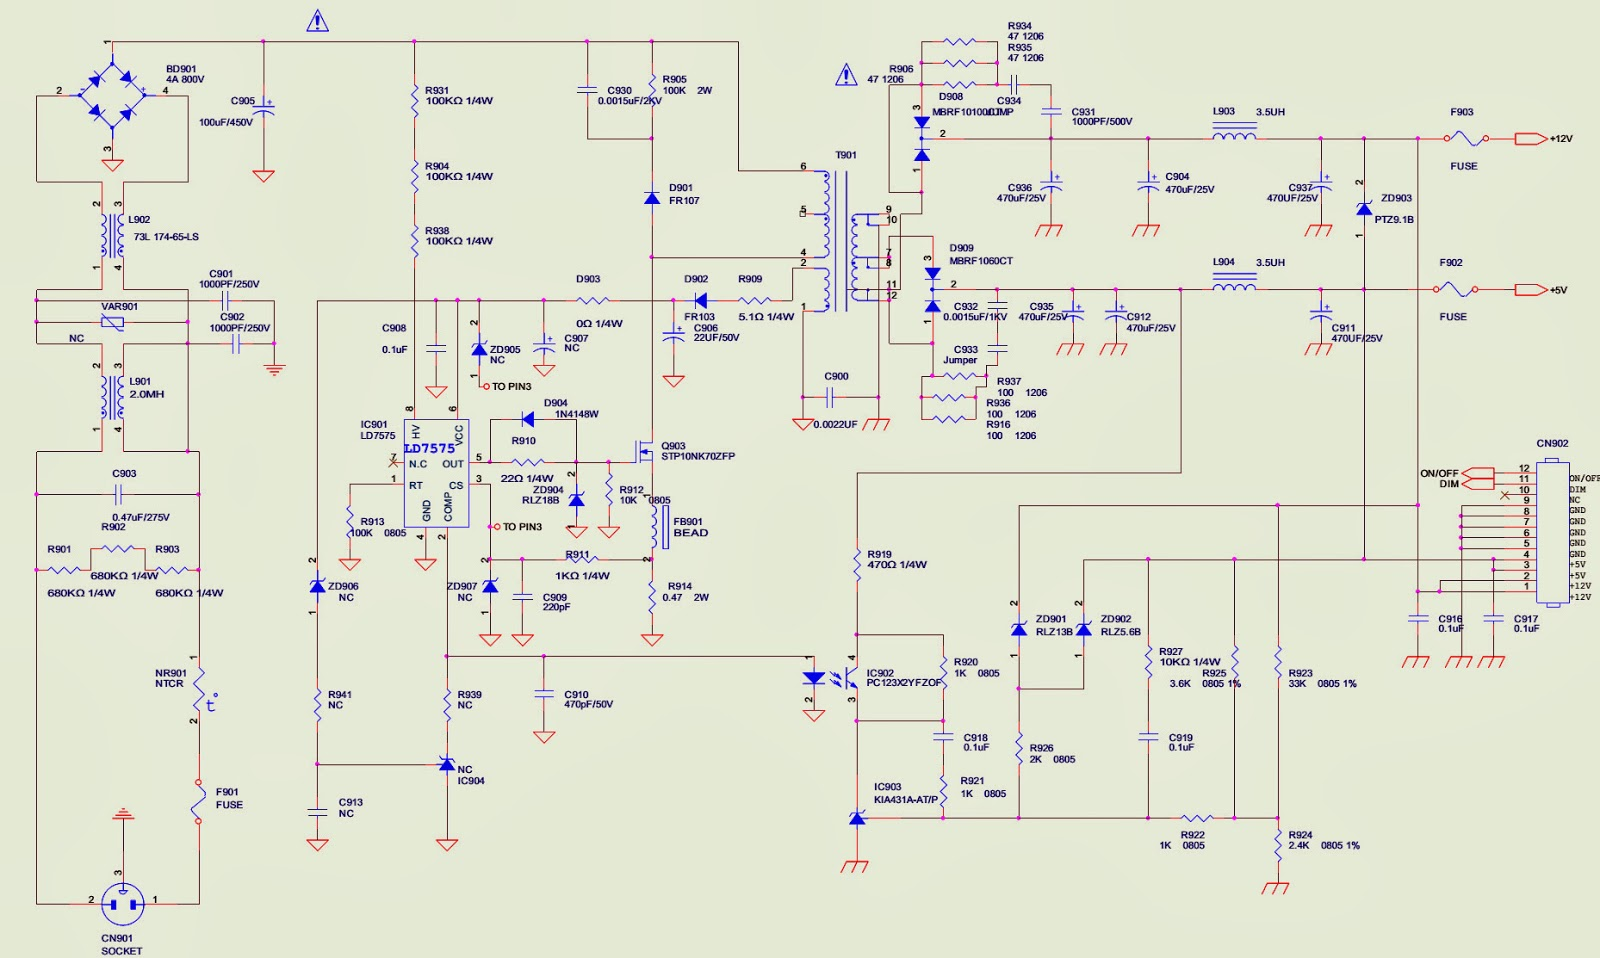 medium resolution of hcl hcm9lwat11 19 inch lcd monitor power supply schematic aoc lcd monitor schematic diagram lcd monitor schematic diagram